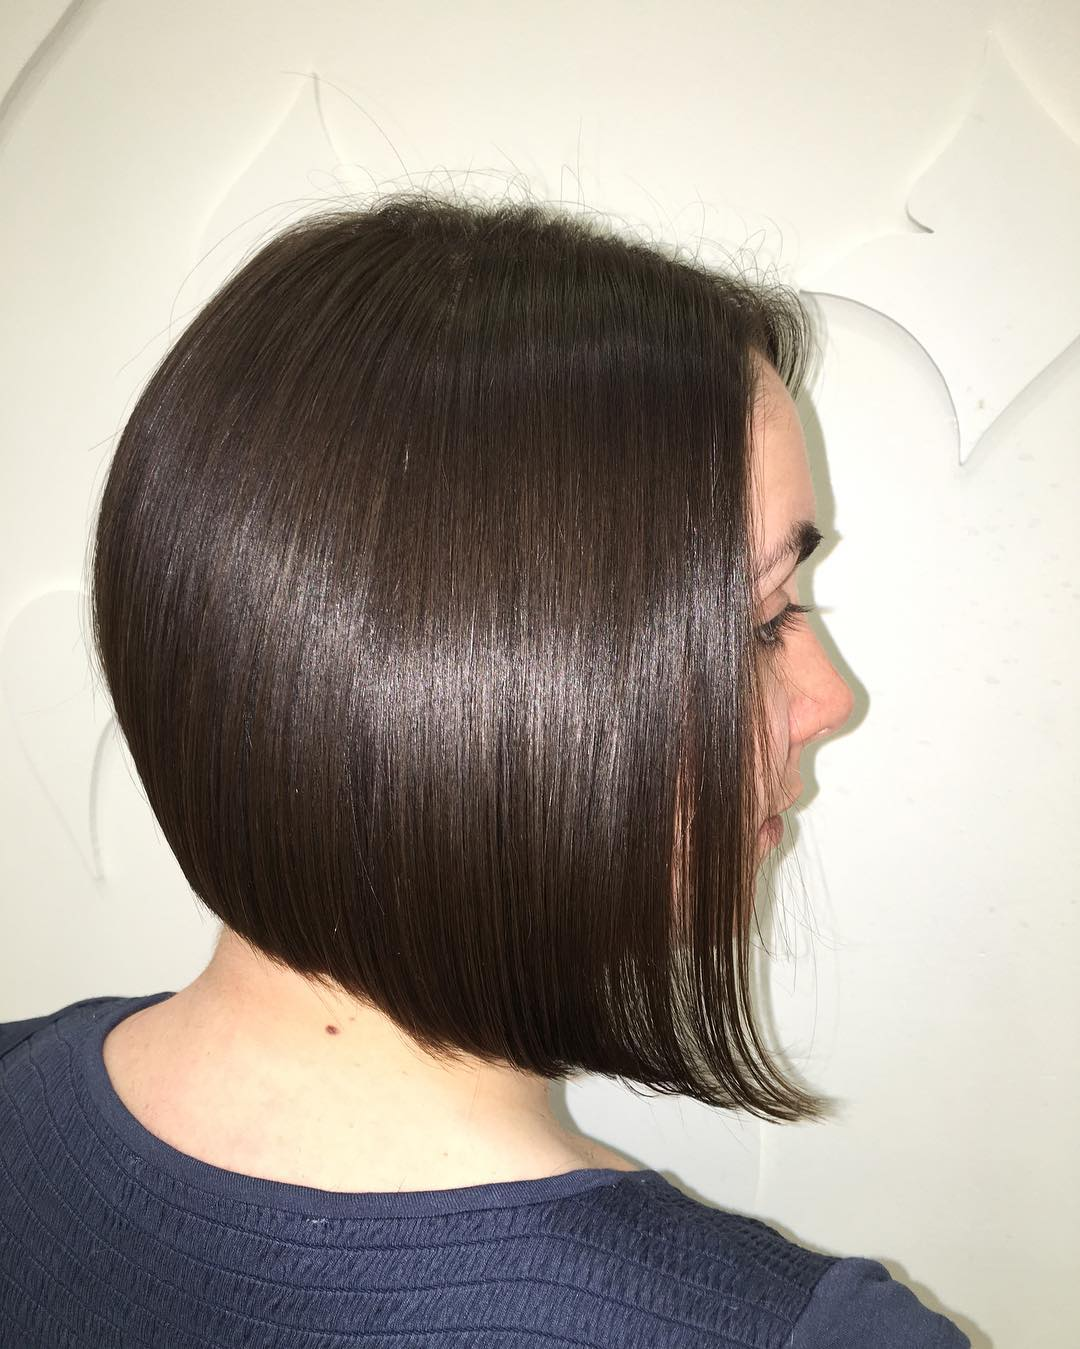 Haircut For Fine Mid Length Hair 25 Long Bob Haircut Ideas Designs Hairstyles Design